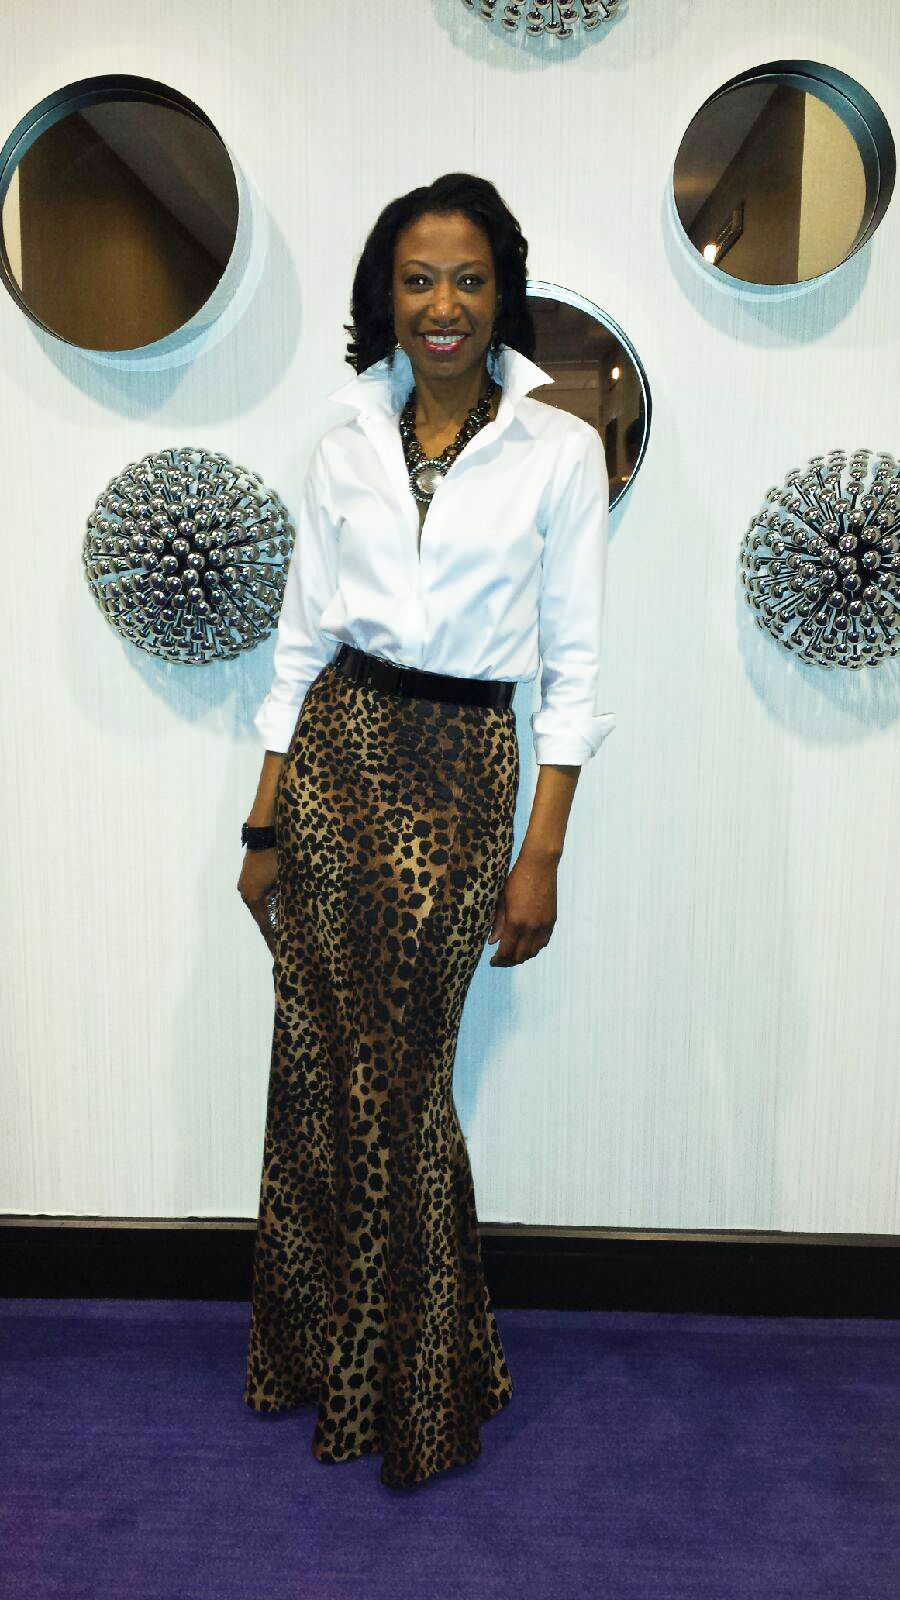 #ShoxieLadies in our Leopard Maxi Skirt!